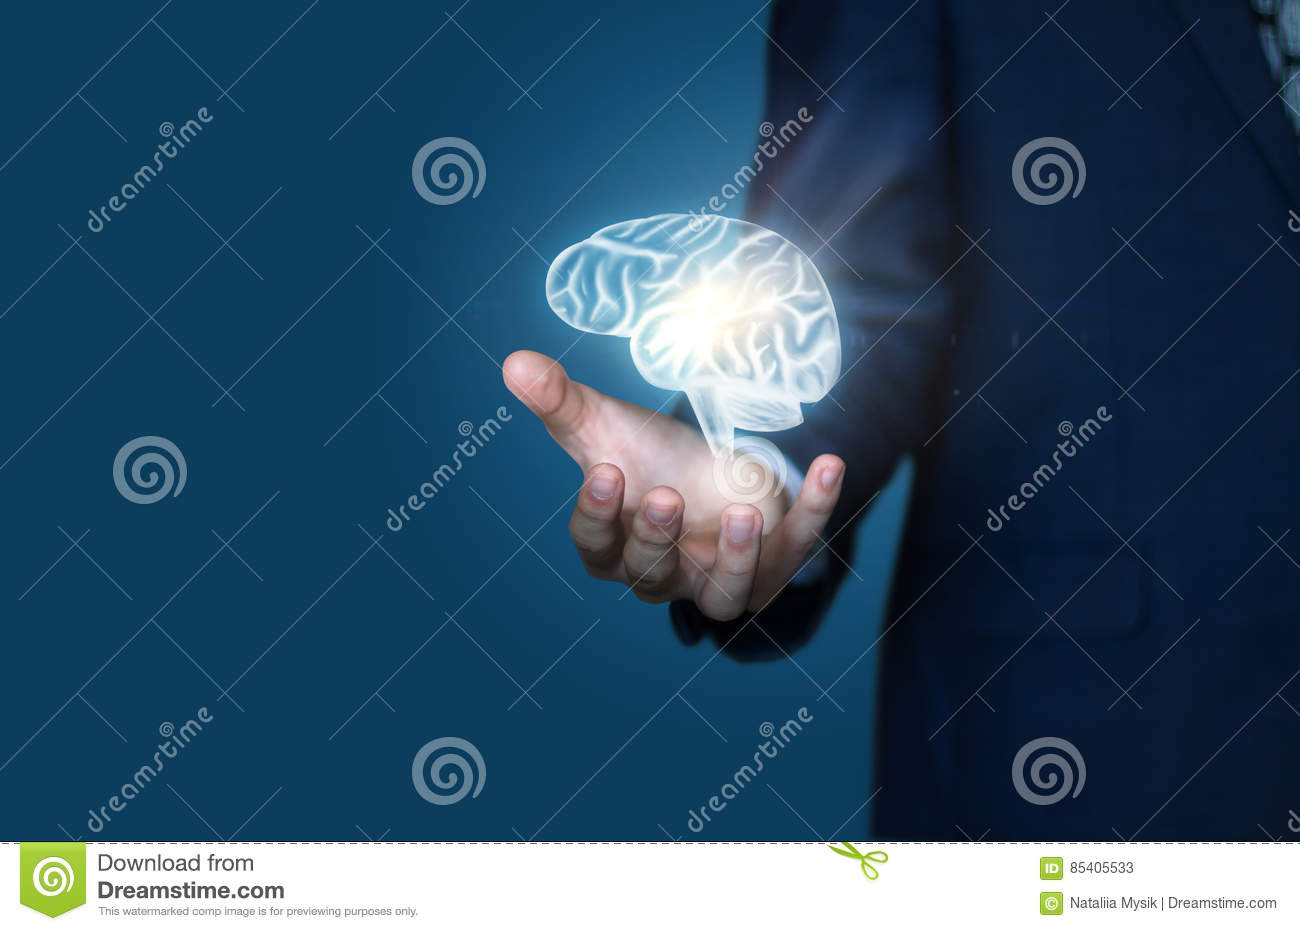 Large possibilities of mind in business.